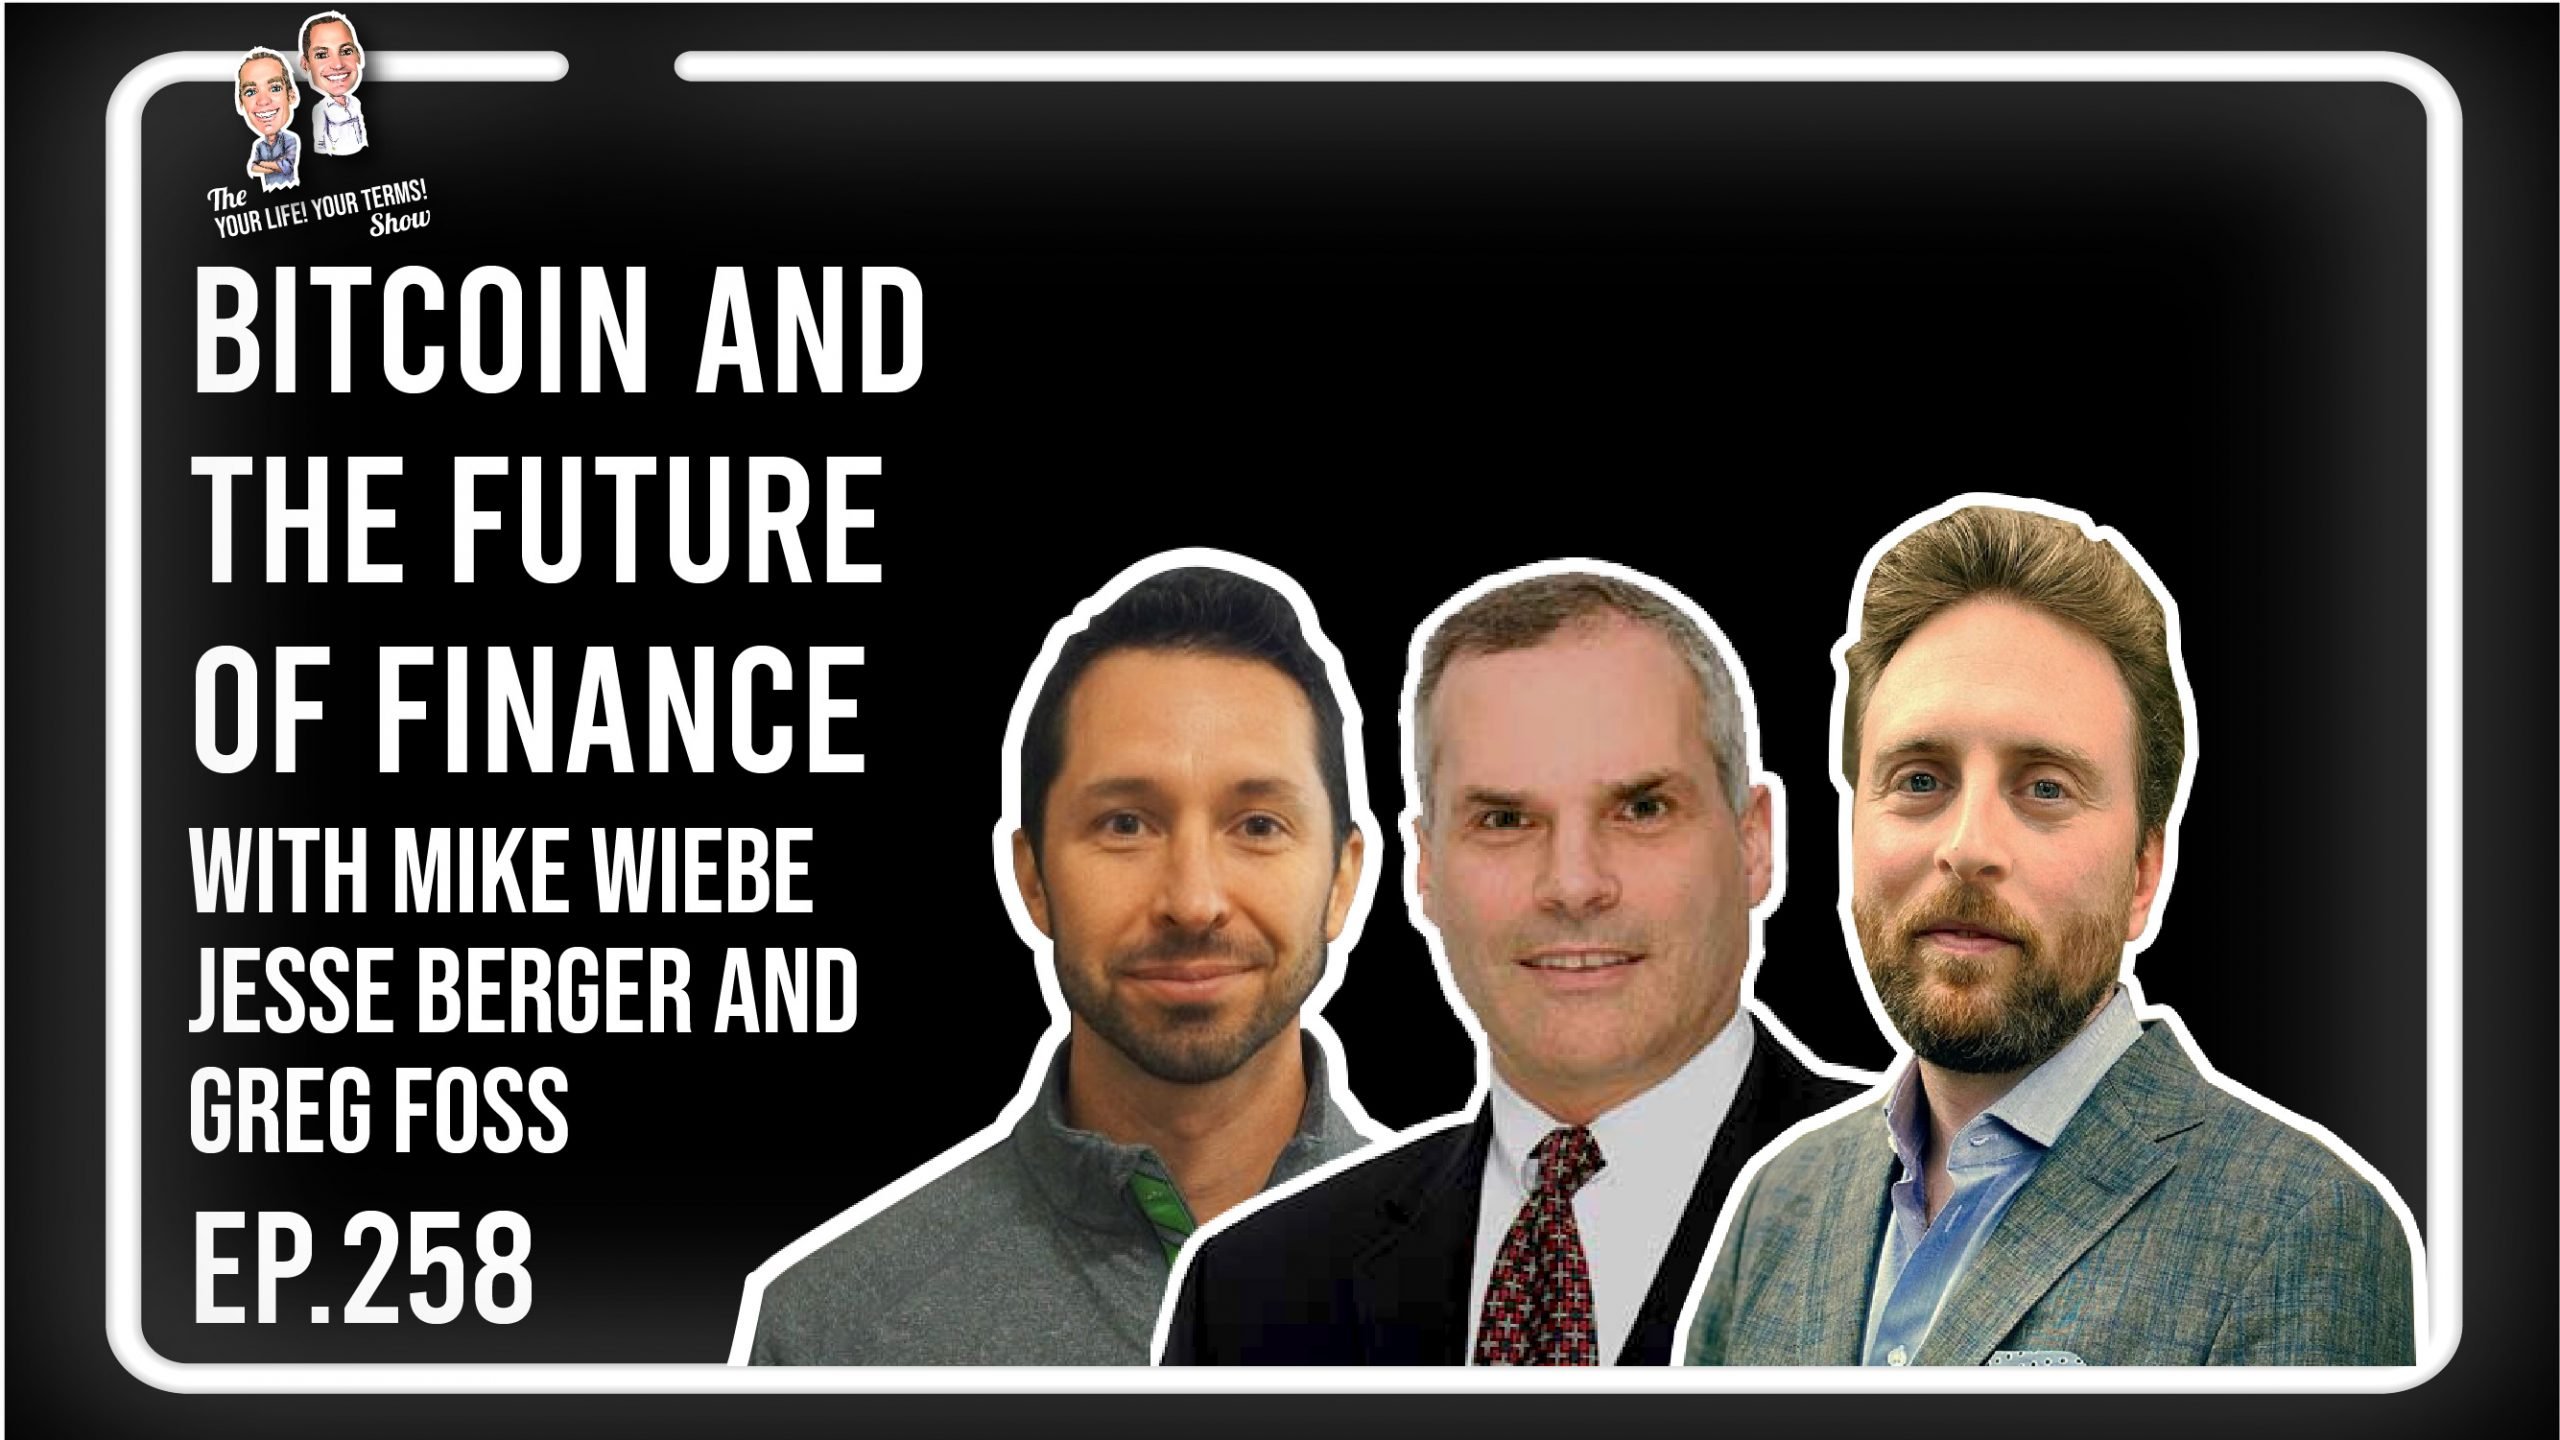 Greg Foss, Jesse Berger & Mike Wiebe - Bitcoin, Canadian Energy, Government Trends & The Future of Finance image